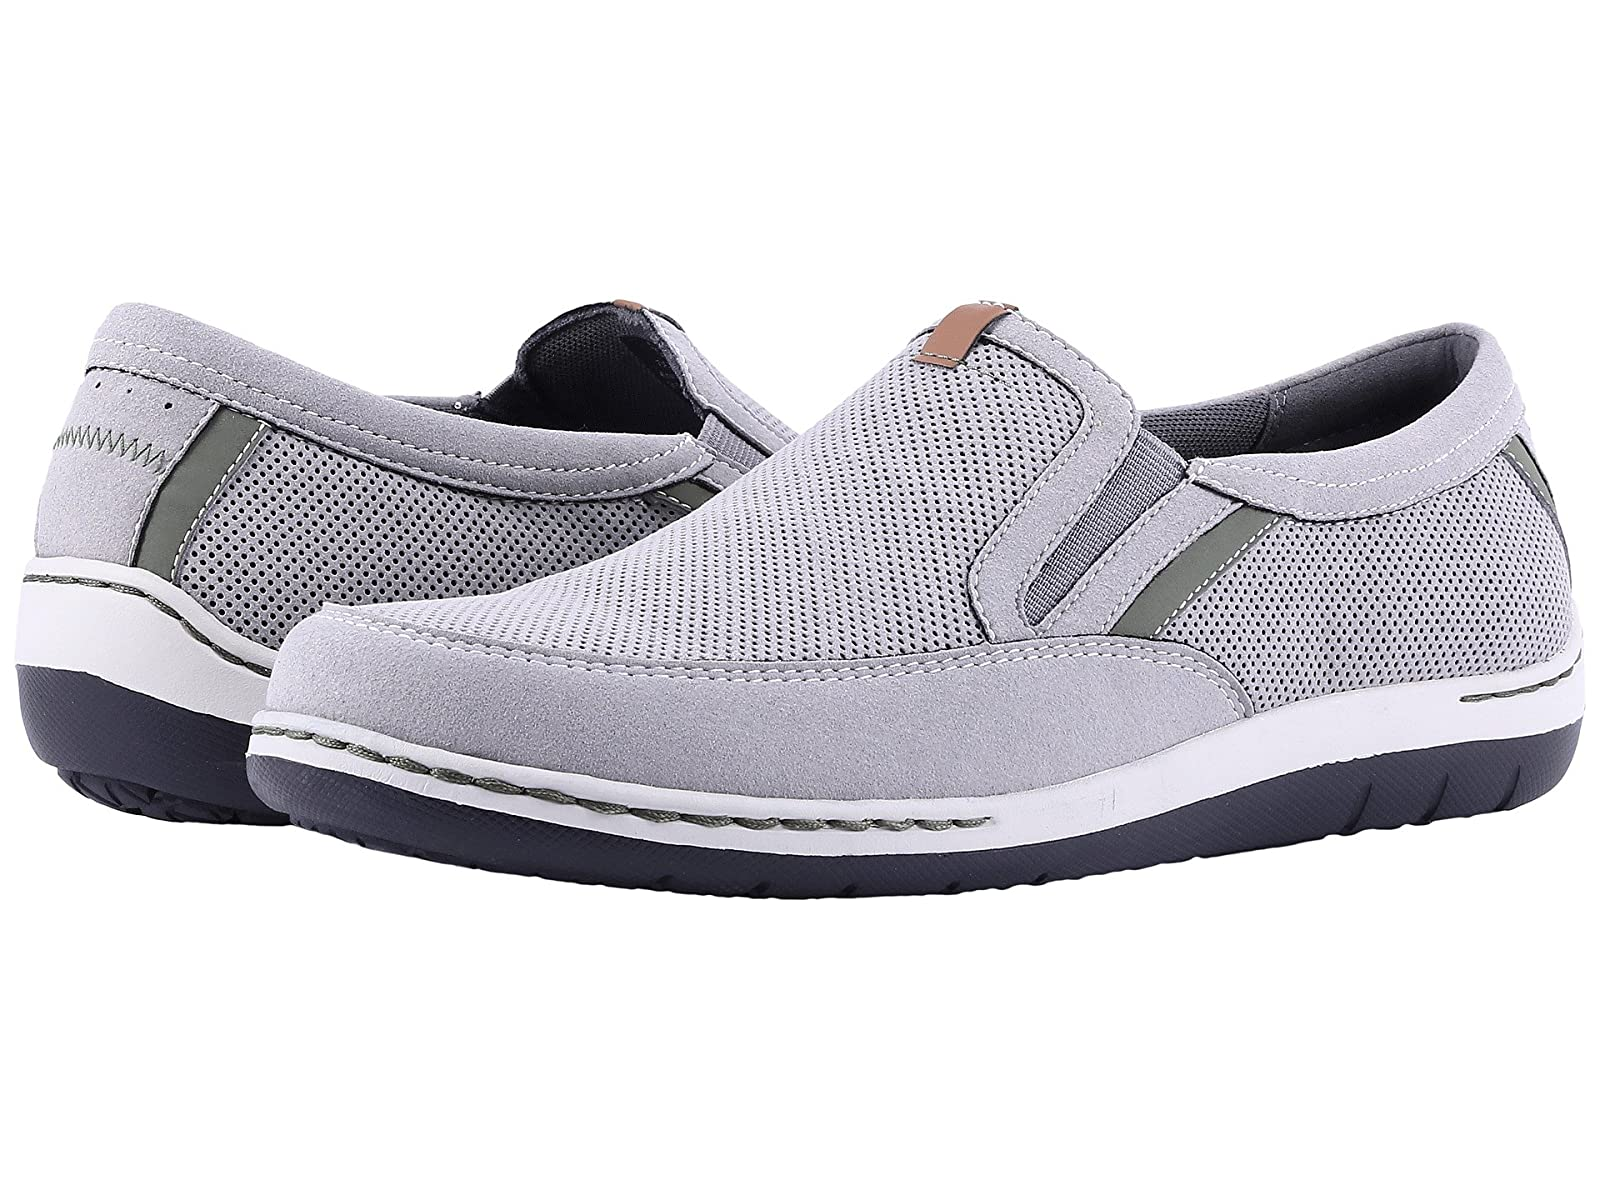 Dunham FitsyncCheap and distinctive eye-catching shoes